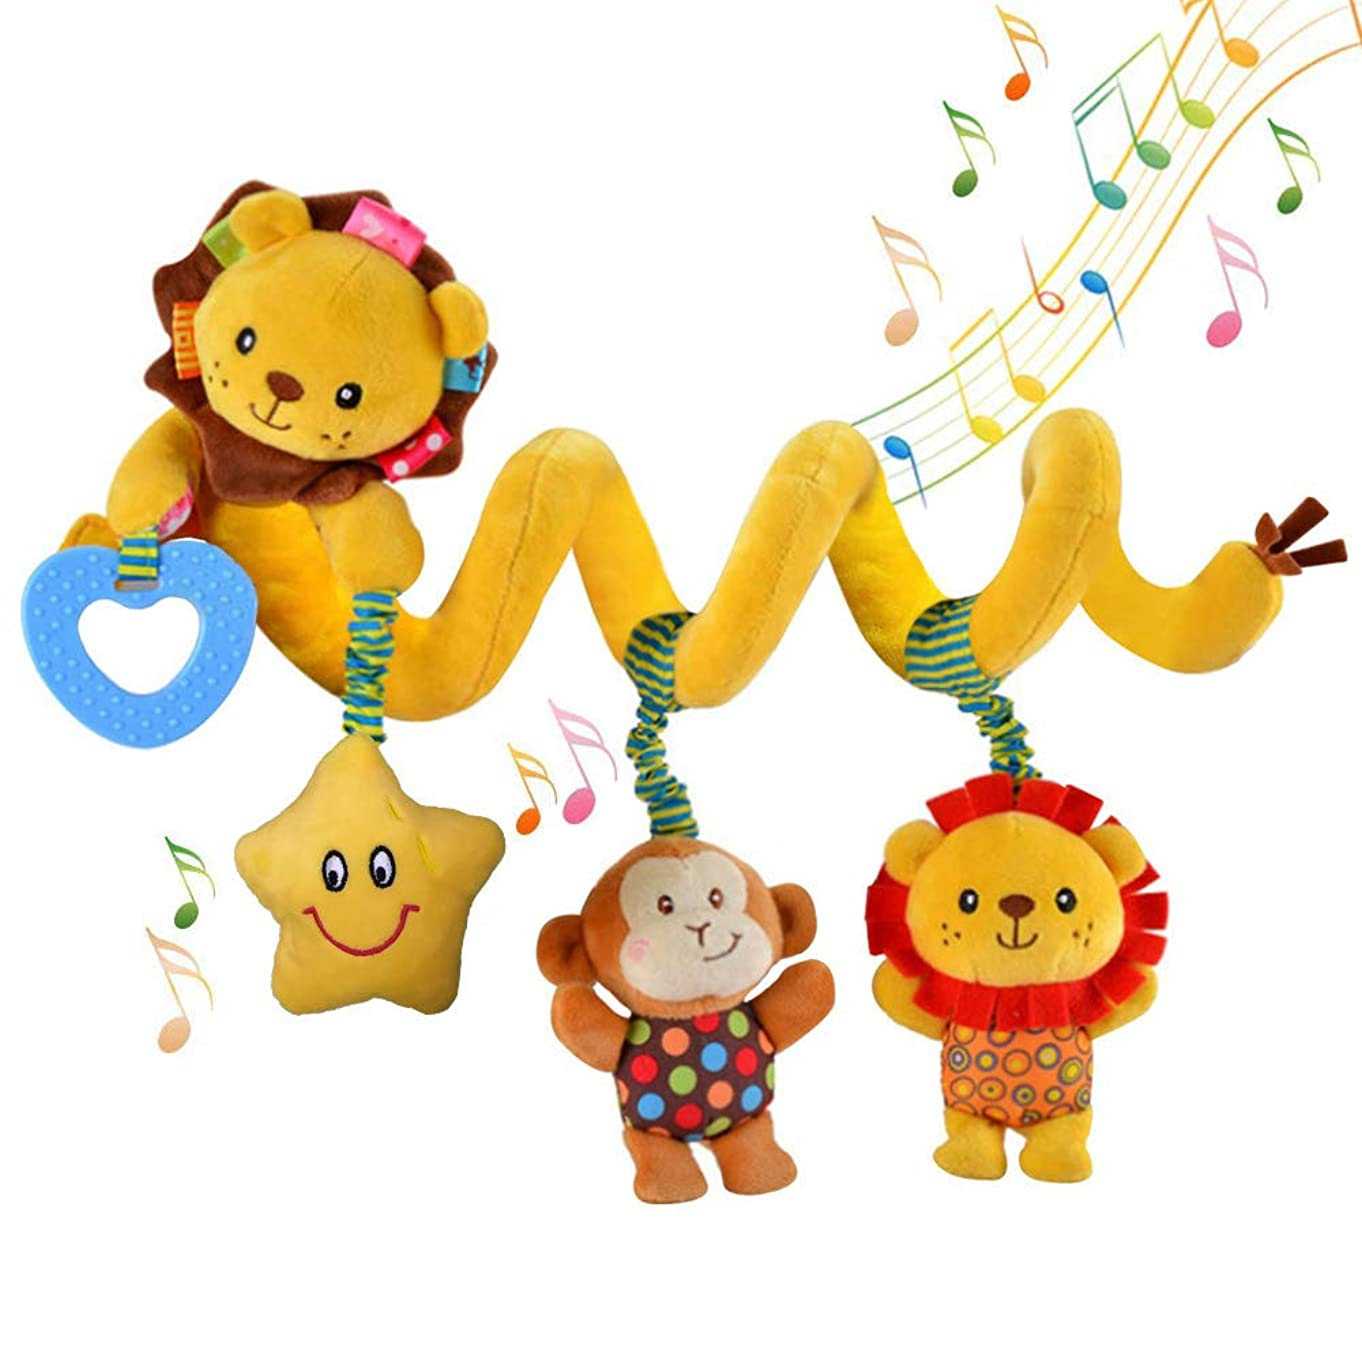 Hanging Car Seat Toys, willway Infant Baby Spiral Plush Toys for Crib Bed Stroller Bar Car Seat Mobile - with Musical Star Rattle Monkey BB Lion